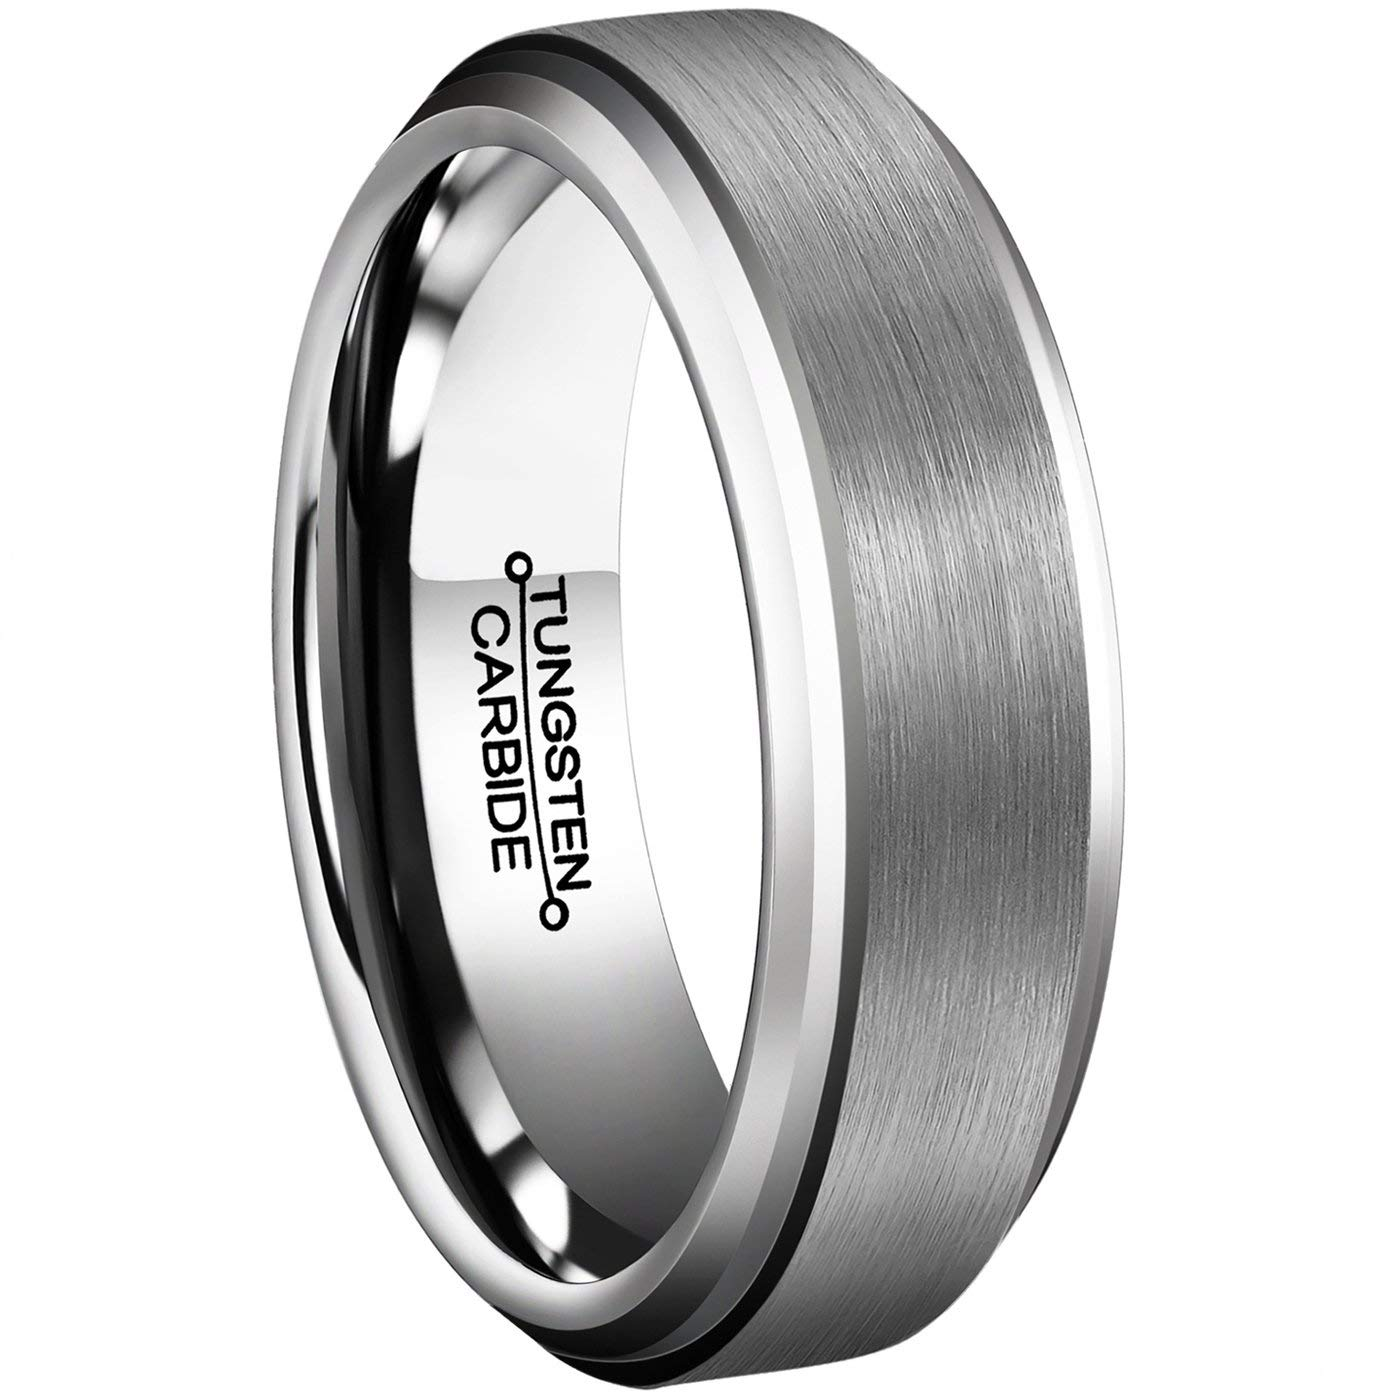 FCL Tungsten Carbide Ring 8MM Blue Carbon Fiber Inlay Black Plated Men Band Size 7-13